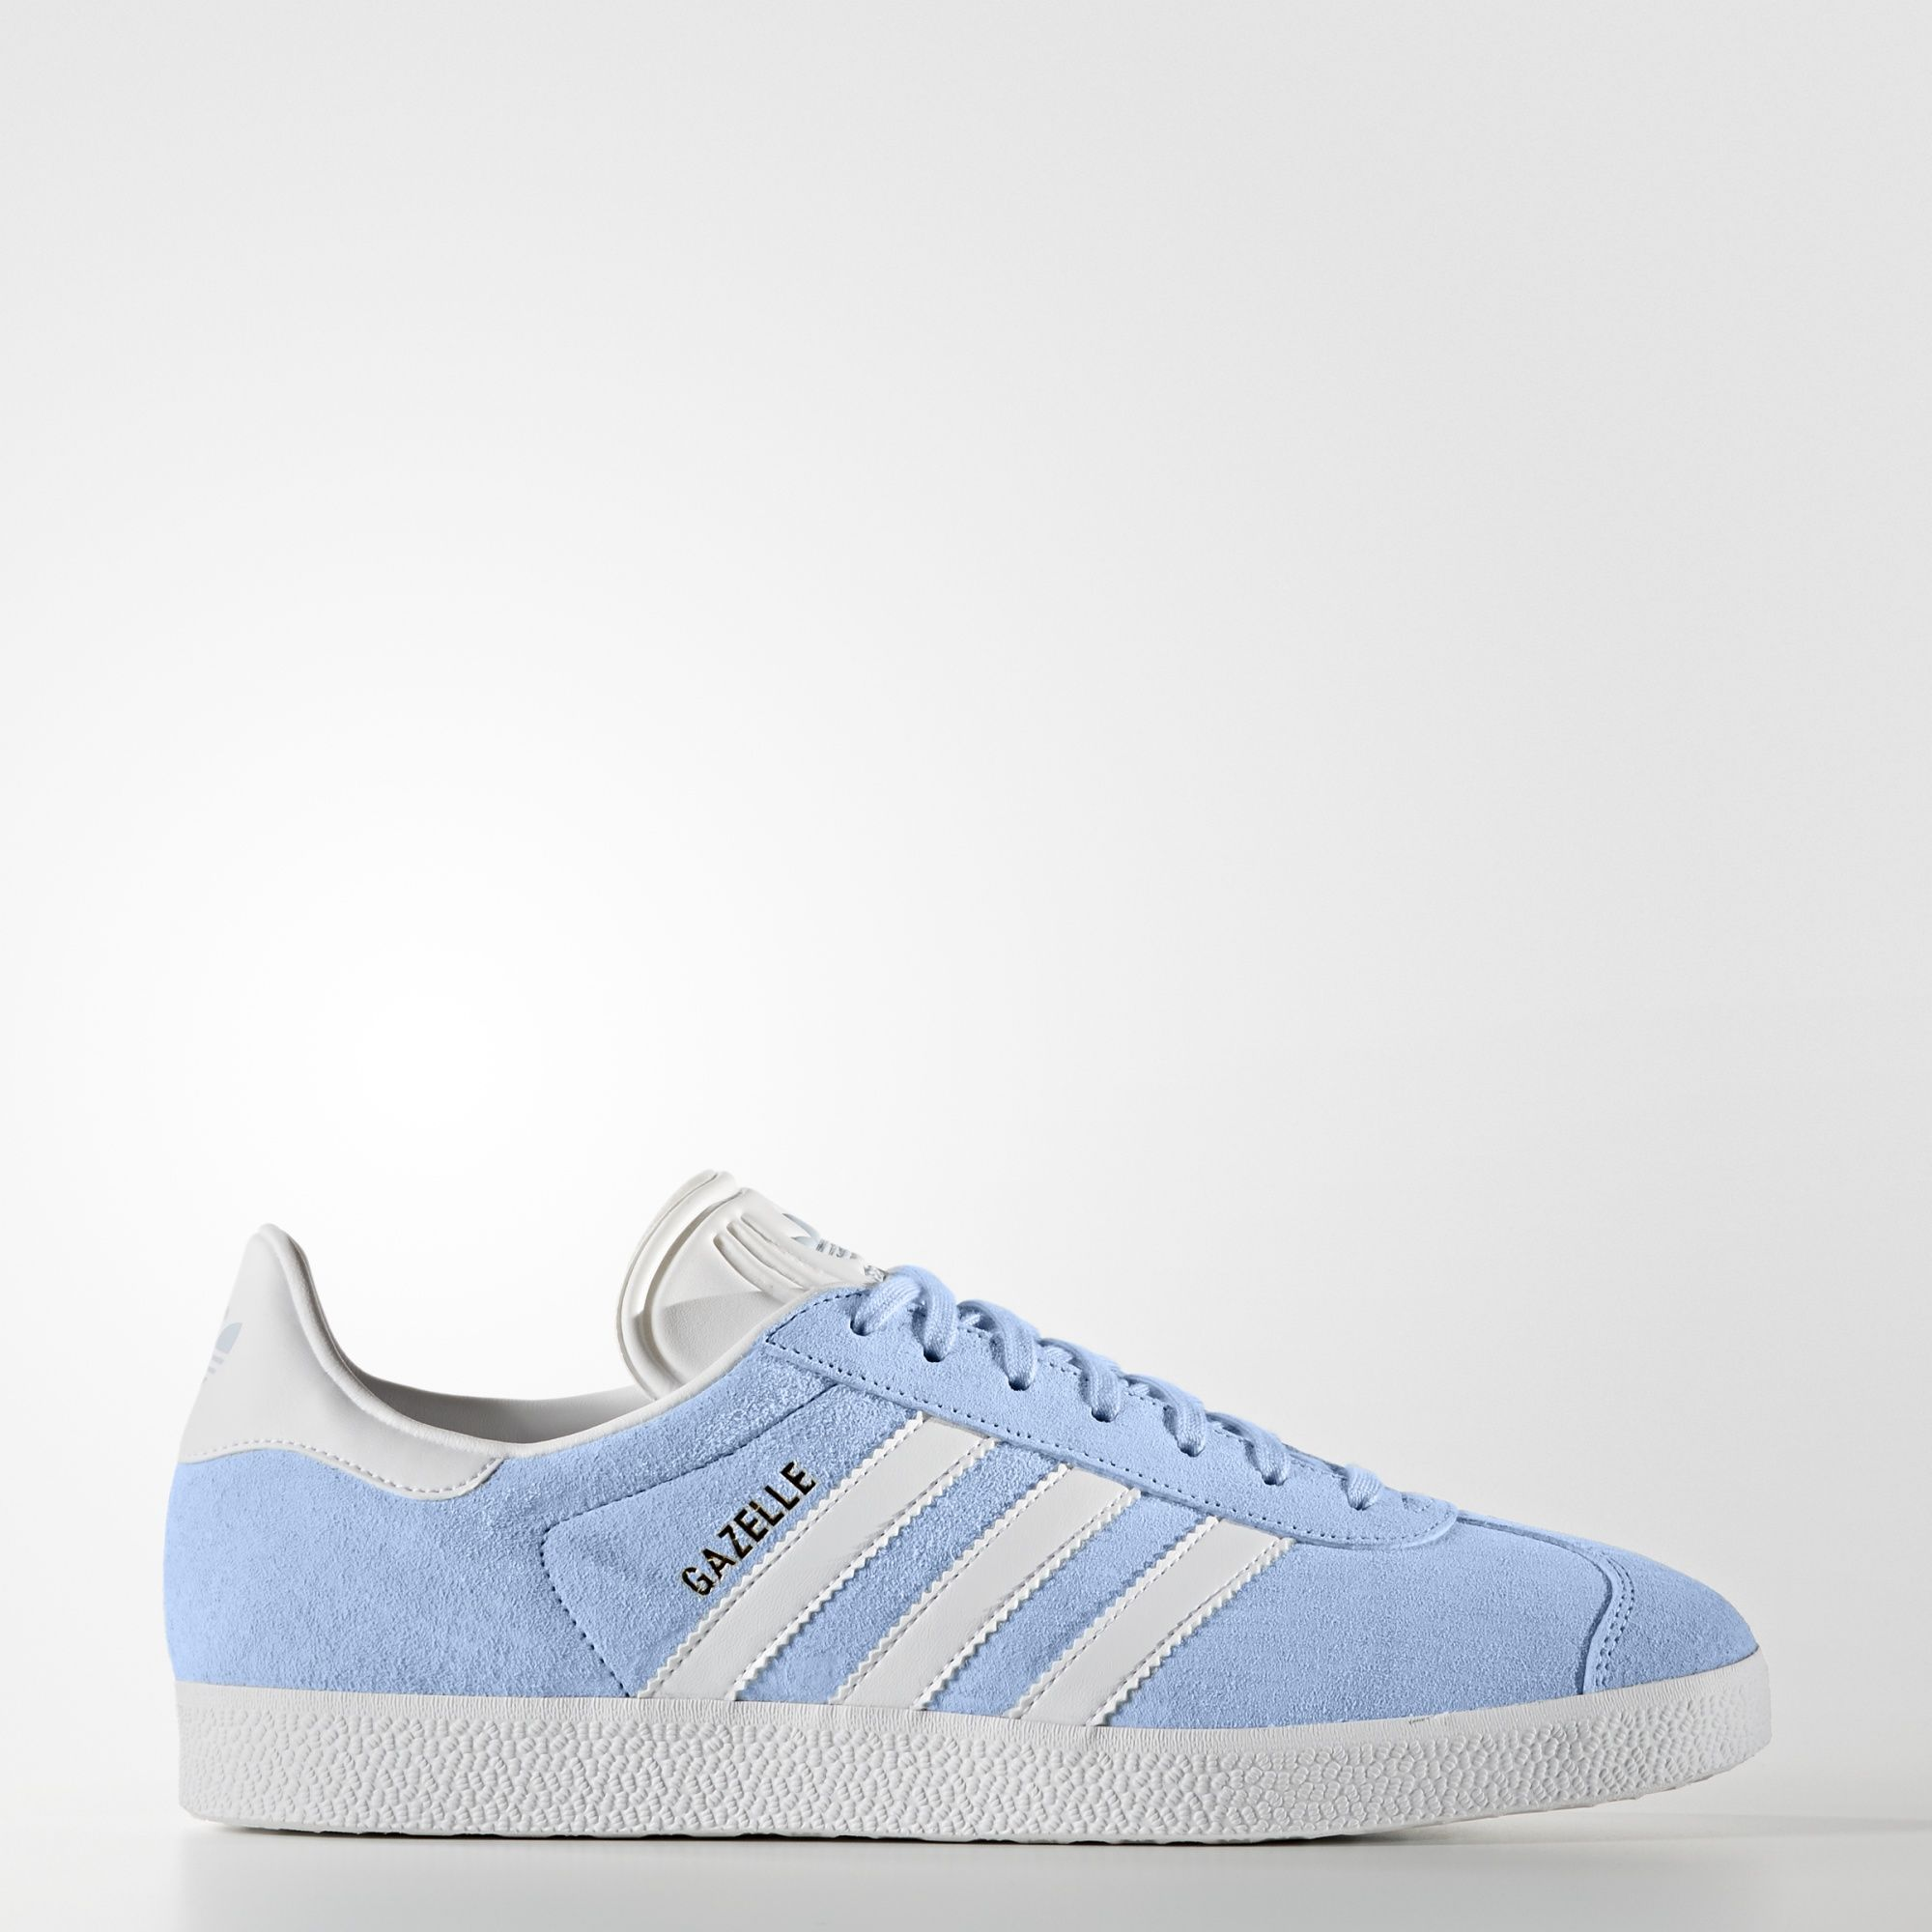 adidas - Gazelle Shoes size 11(this color or the light pink)